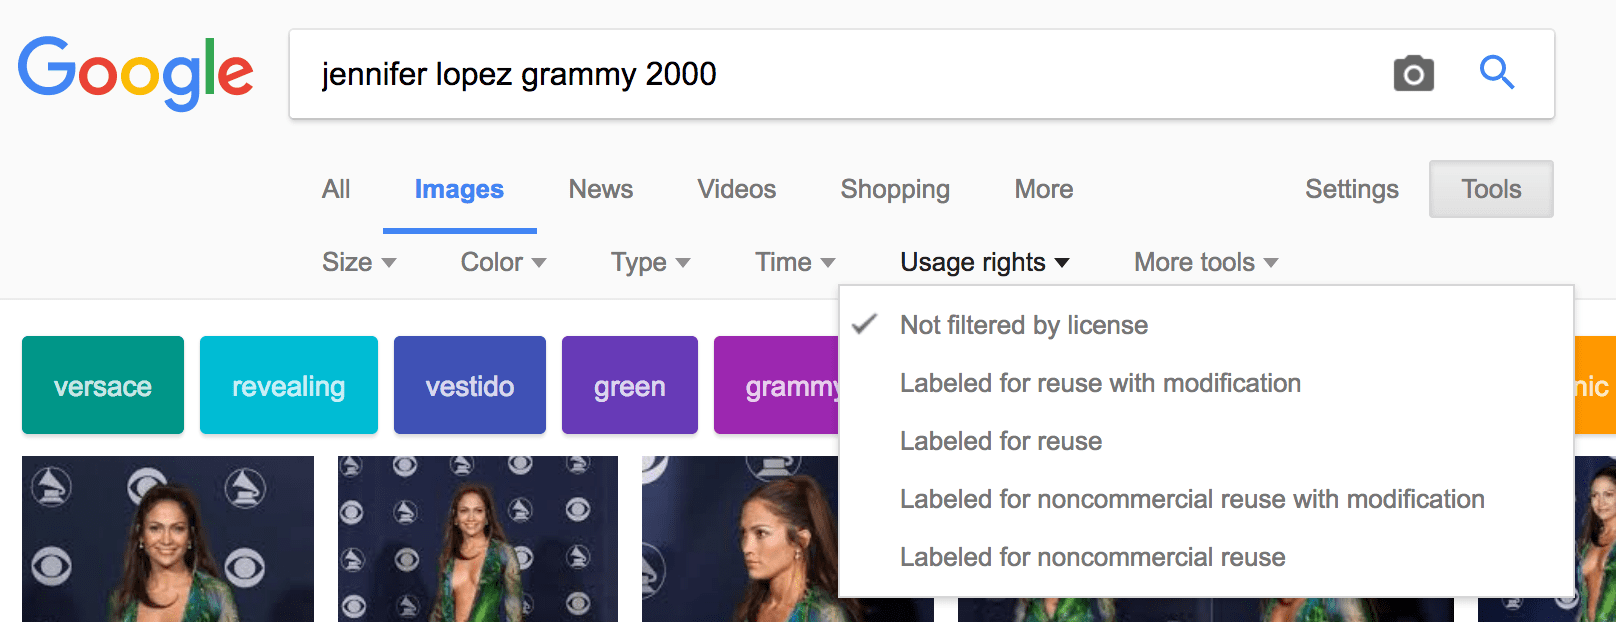 Google Image Search is shown, with tools and then usage rights selected to choose copyright free images